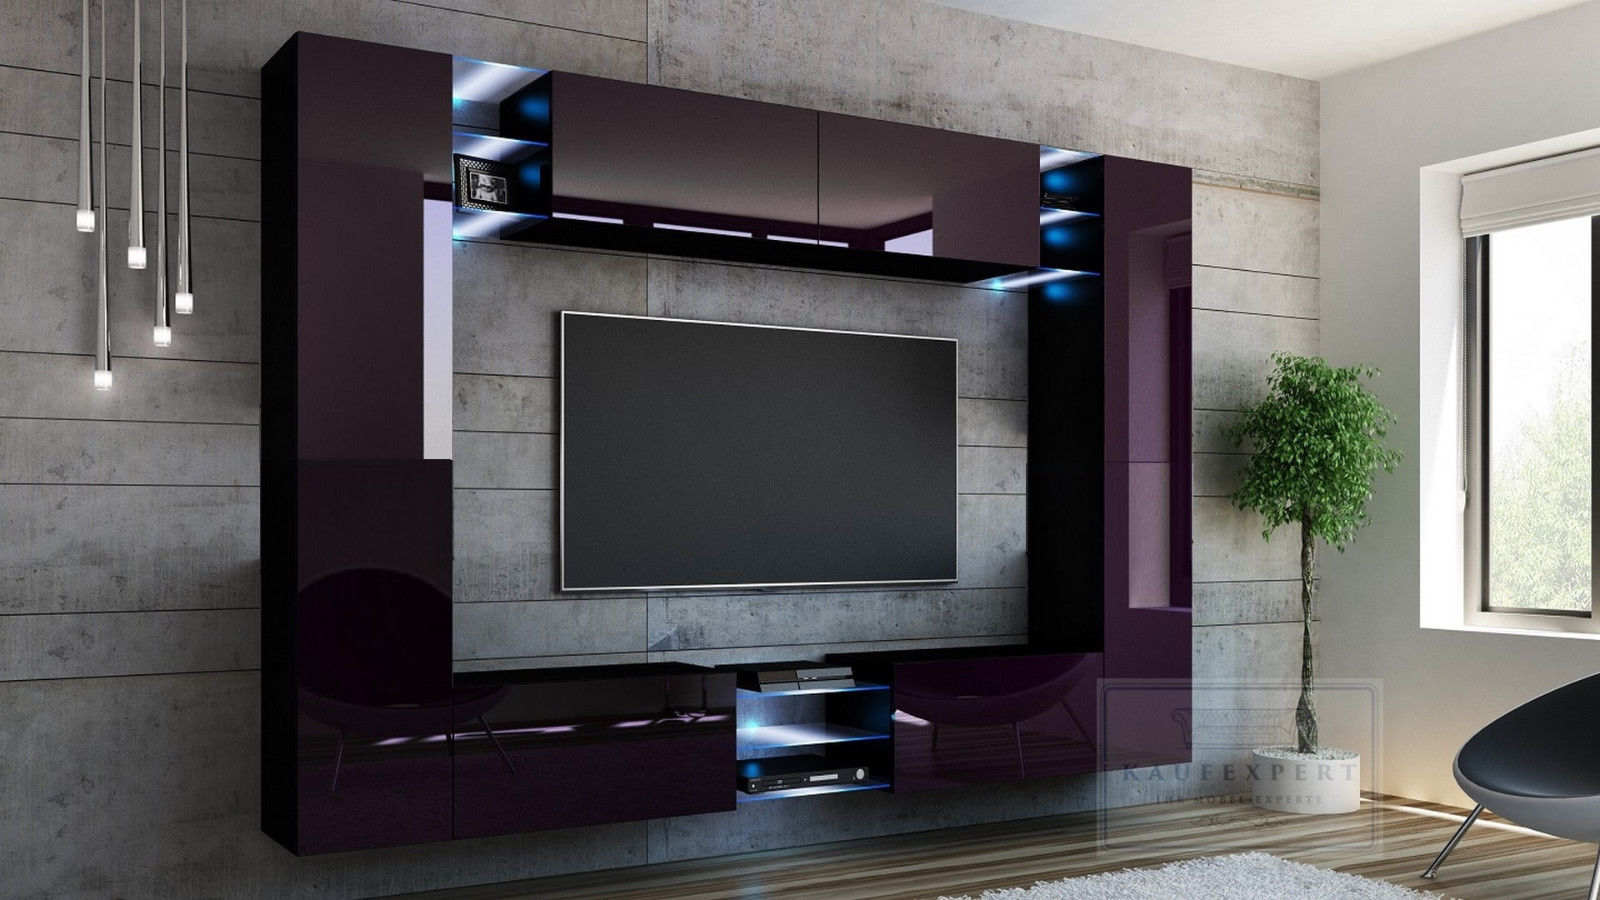 kaufexpert wohnwand kino aubergine hochglanz schwarz mediawand medienwand design modern led. Black Bedroom Furniture Sets. Home Design Ideas